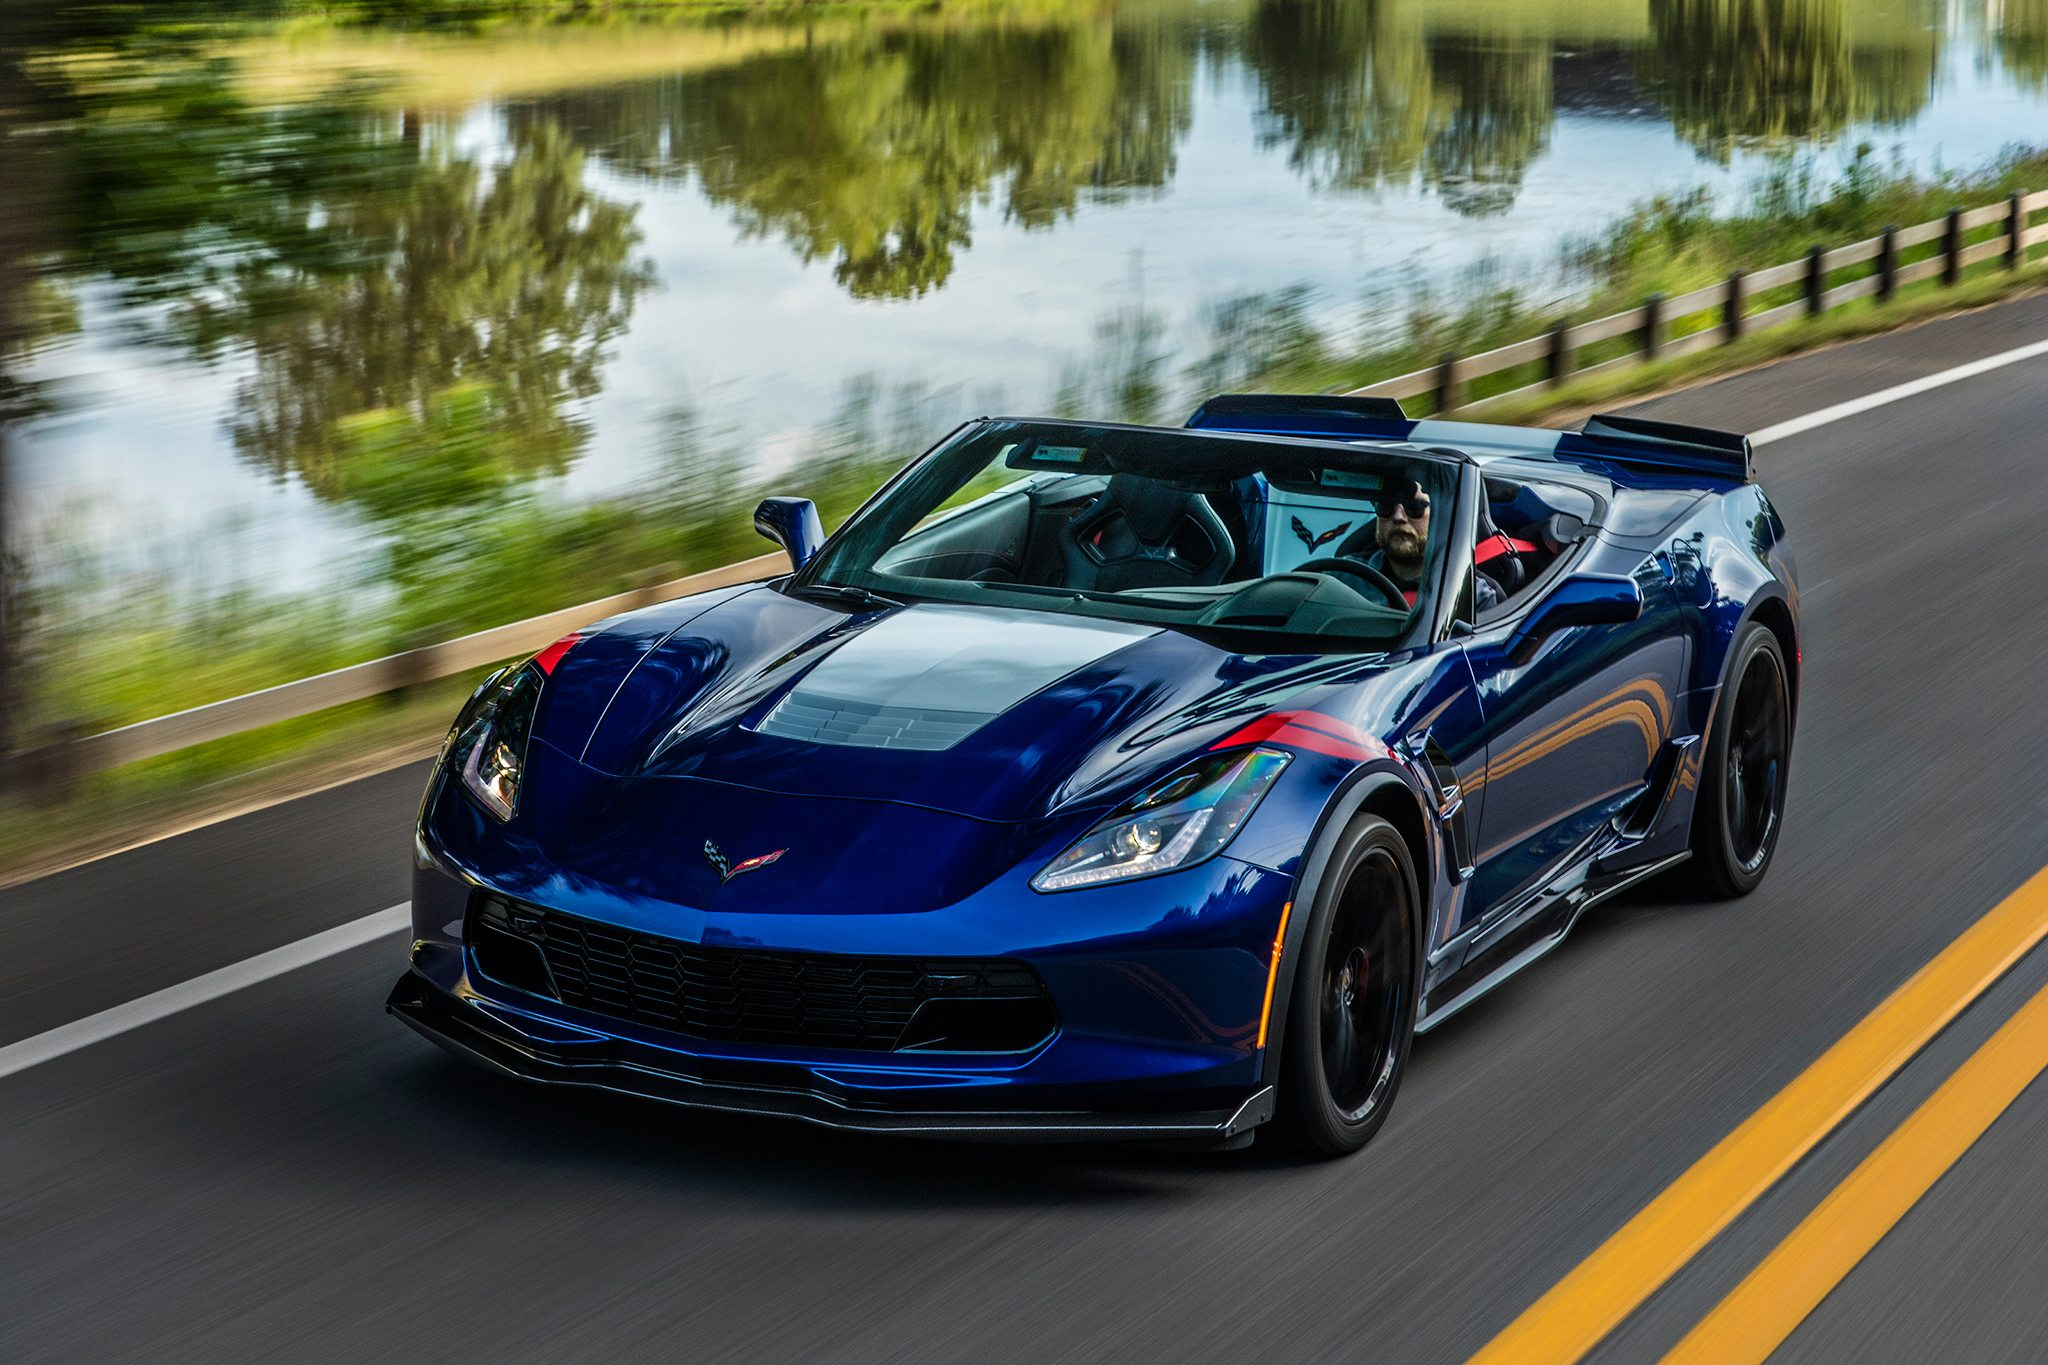 Chevrolet Corvette Grand Sport Front Three Quarter In Motion on c4 corvette quarter panels